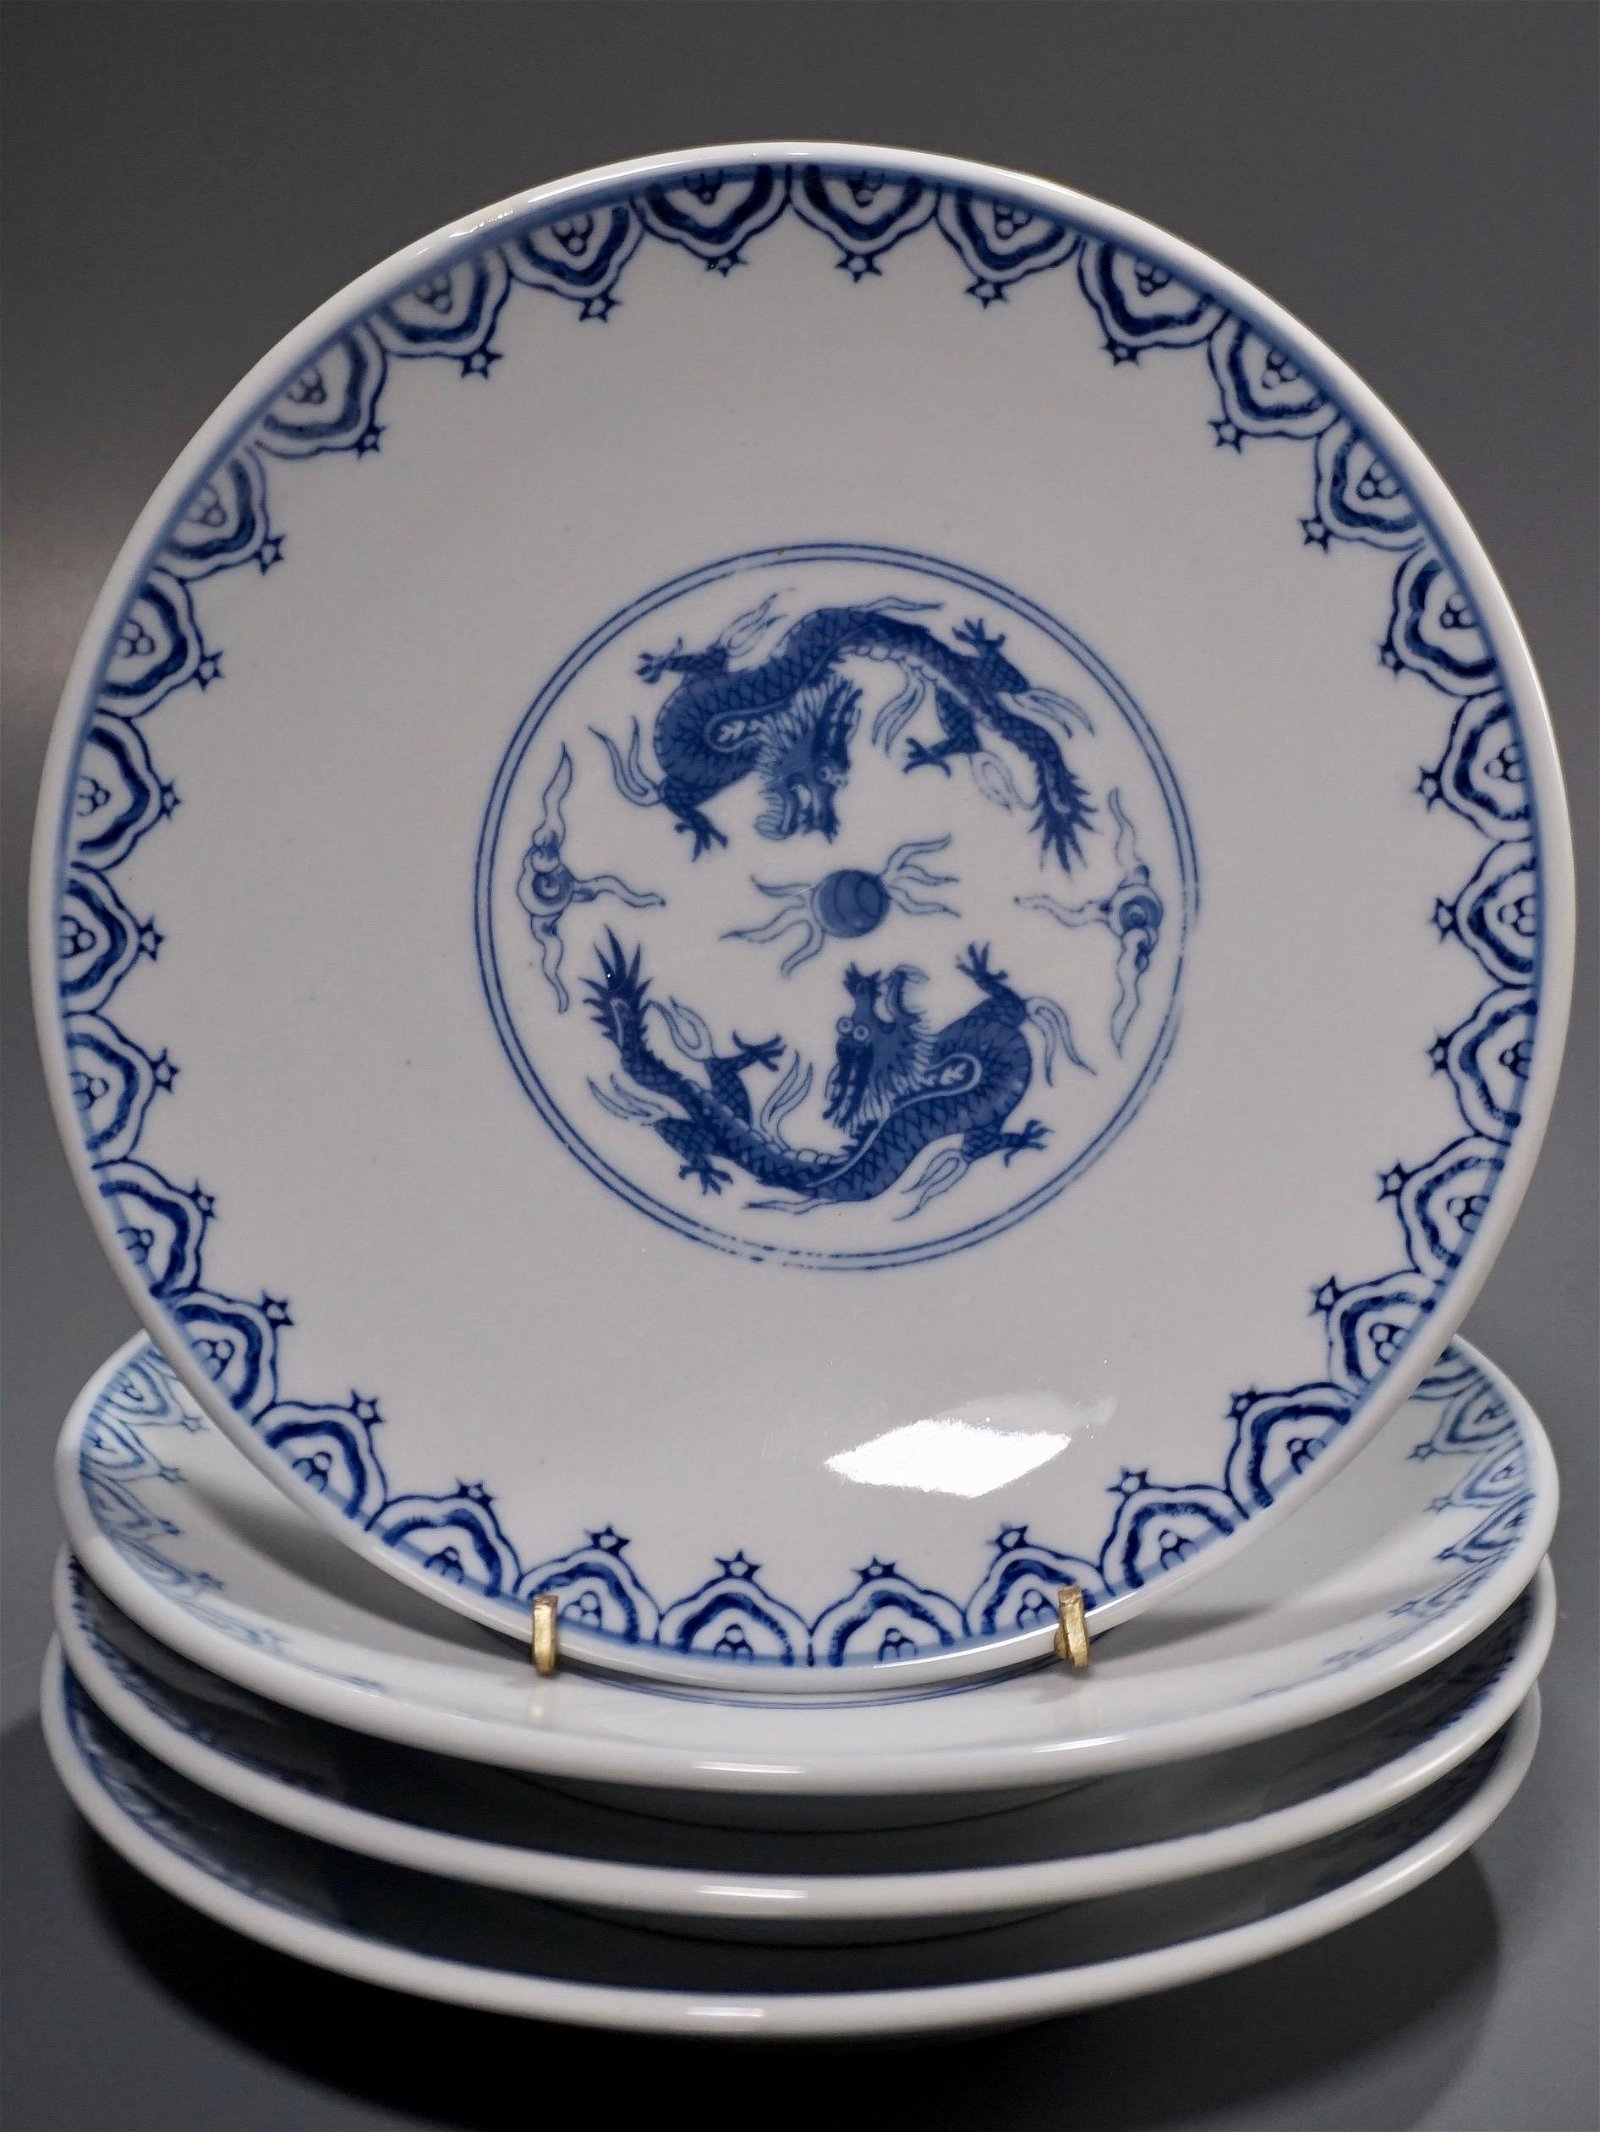 Blue and White Chinese Dragon Porcelain Plates Lot of 4